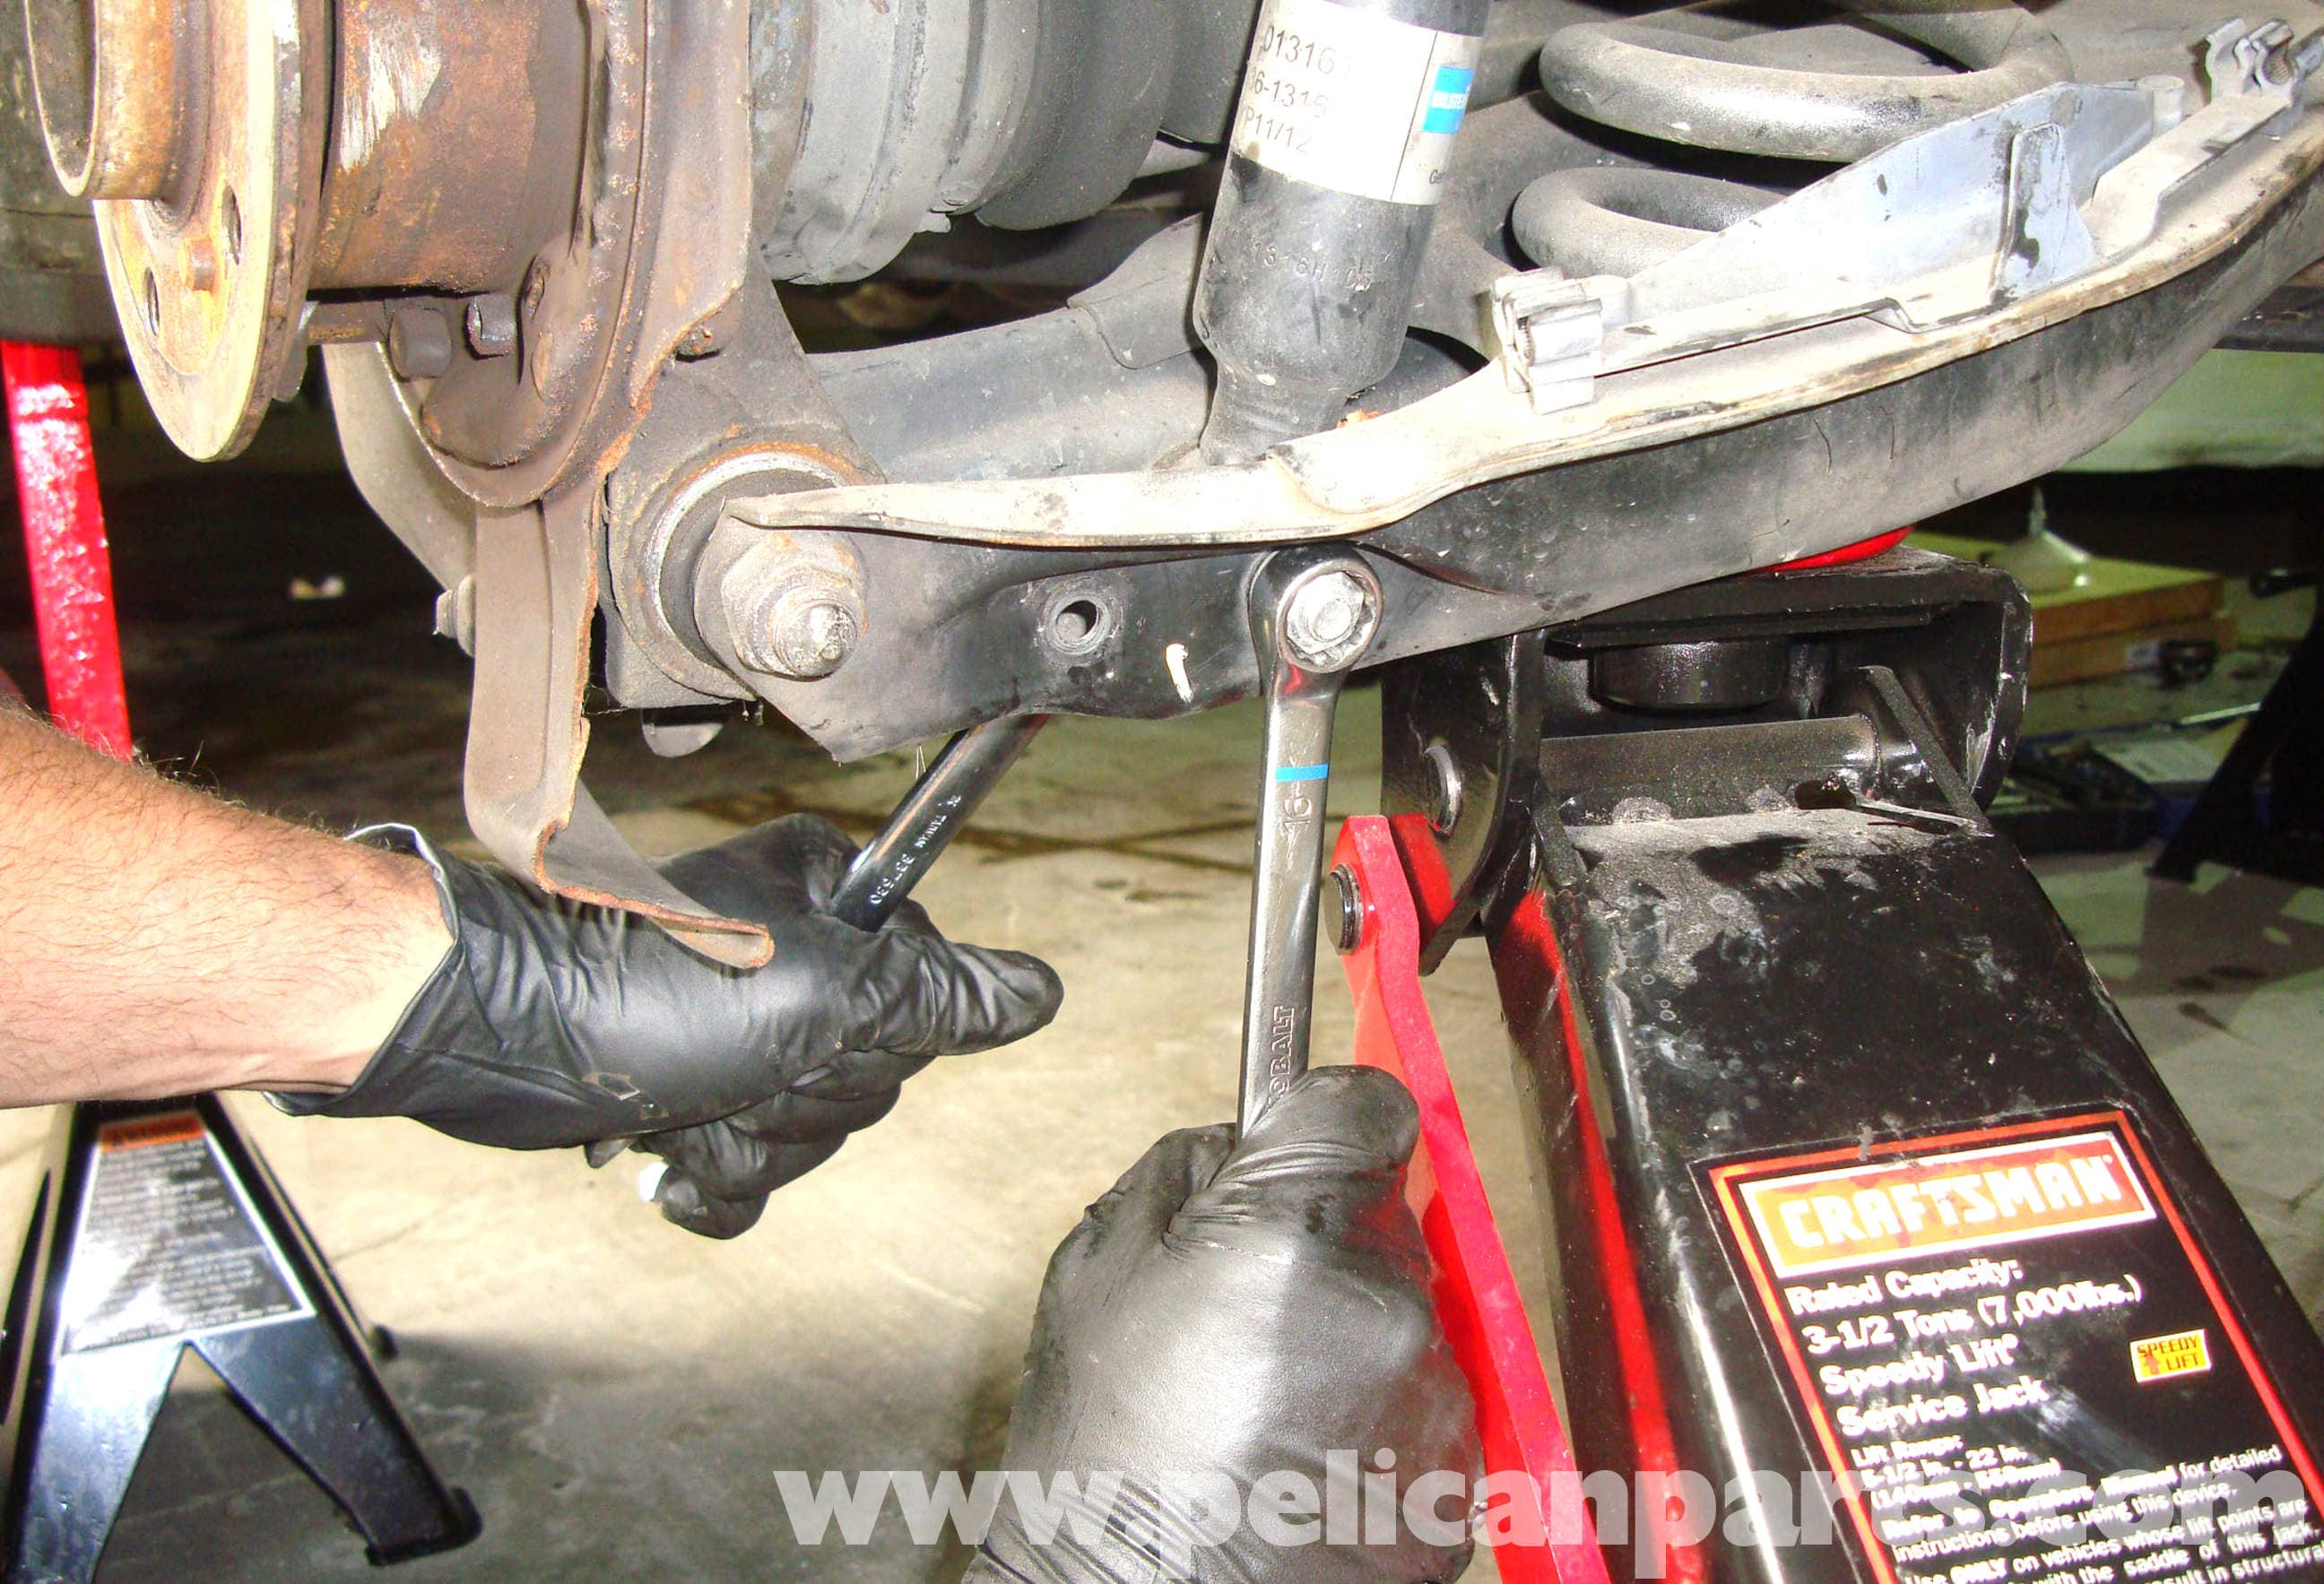 Mercedes-Benz R129 Rear Shock Absorber Replacement - SL500